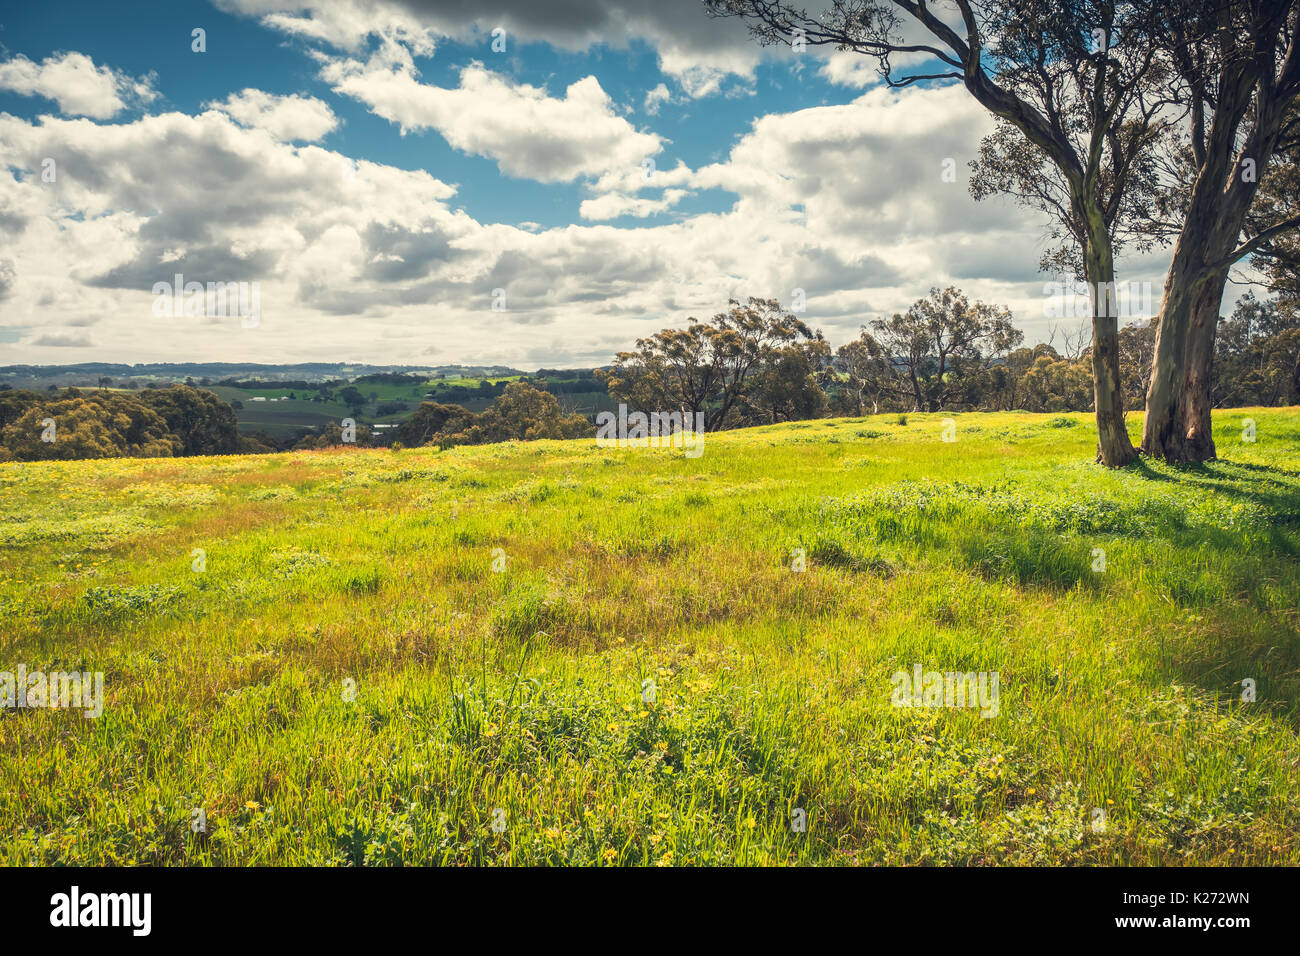 Gumtree stock photos gumtree stock images alamy for Adelaide hills landscape